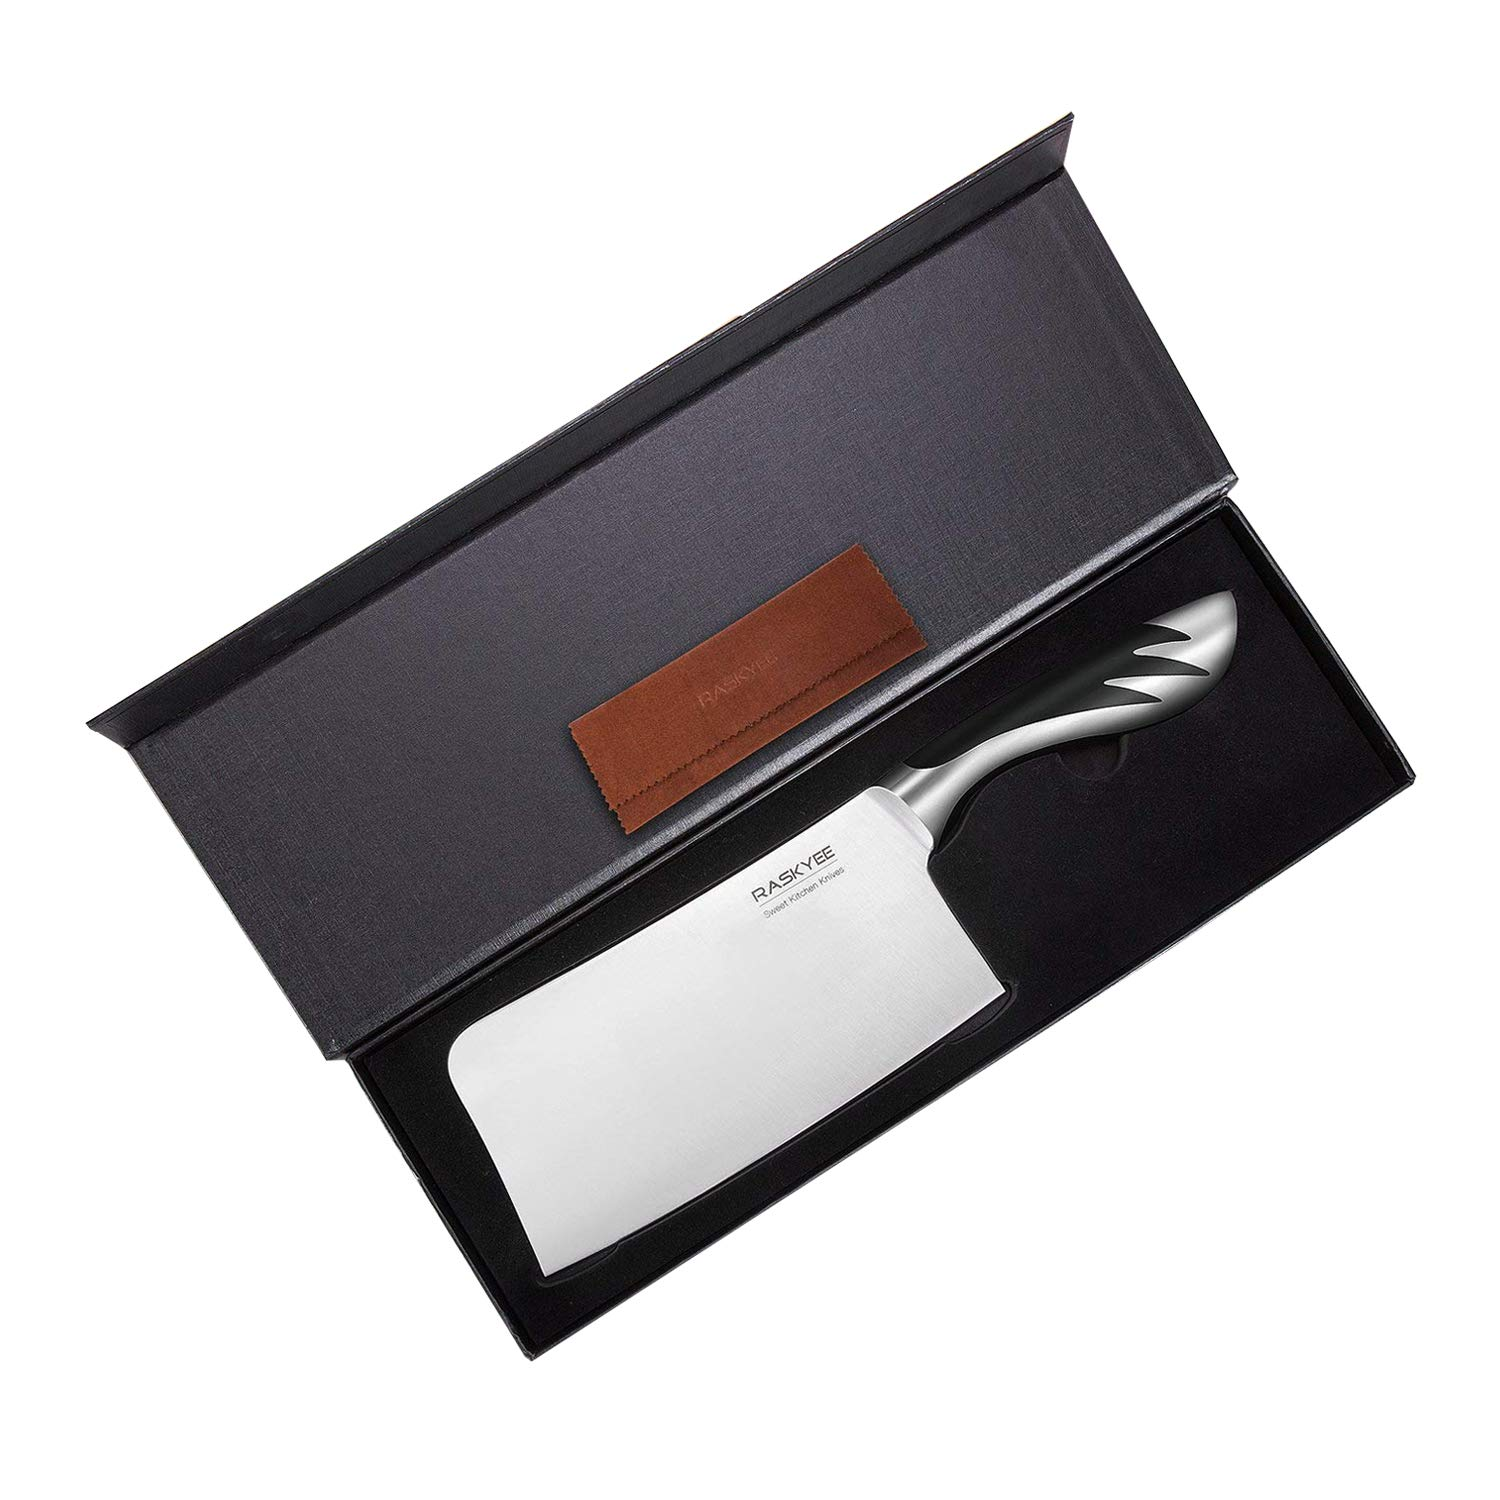 Butcher Knife,Raskyee 7 inch German Stainless Steel Cleaver Kitchen Meat Knife with Multipurpose Use for Home Kitchen and Restaurant